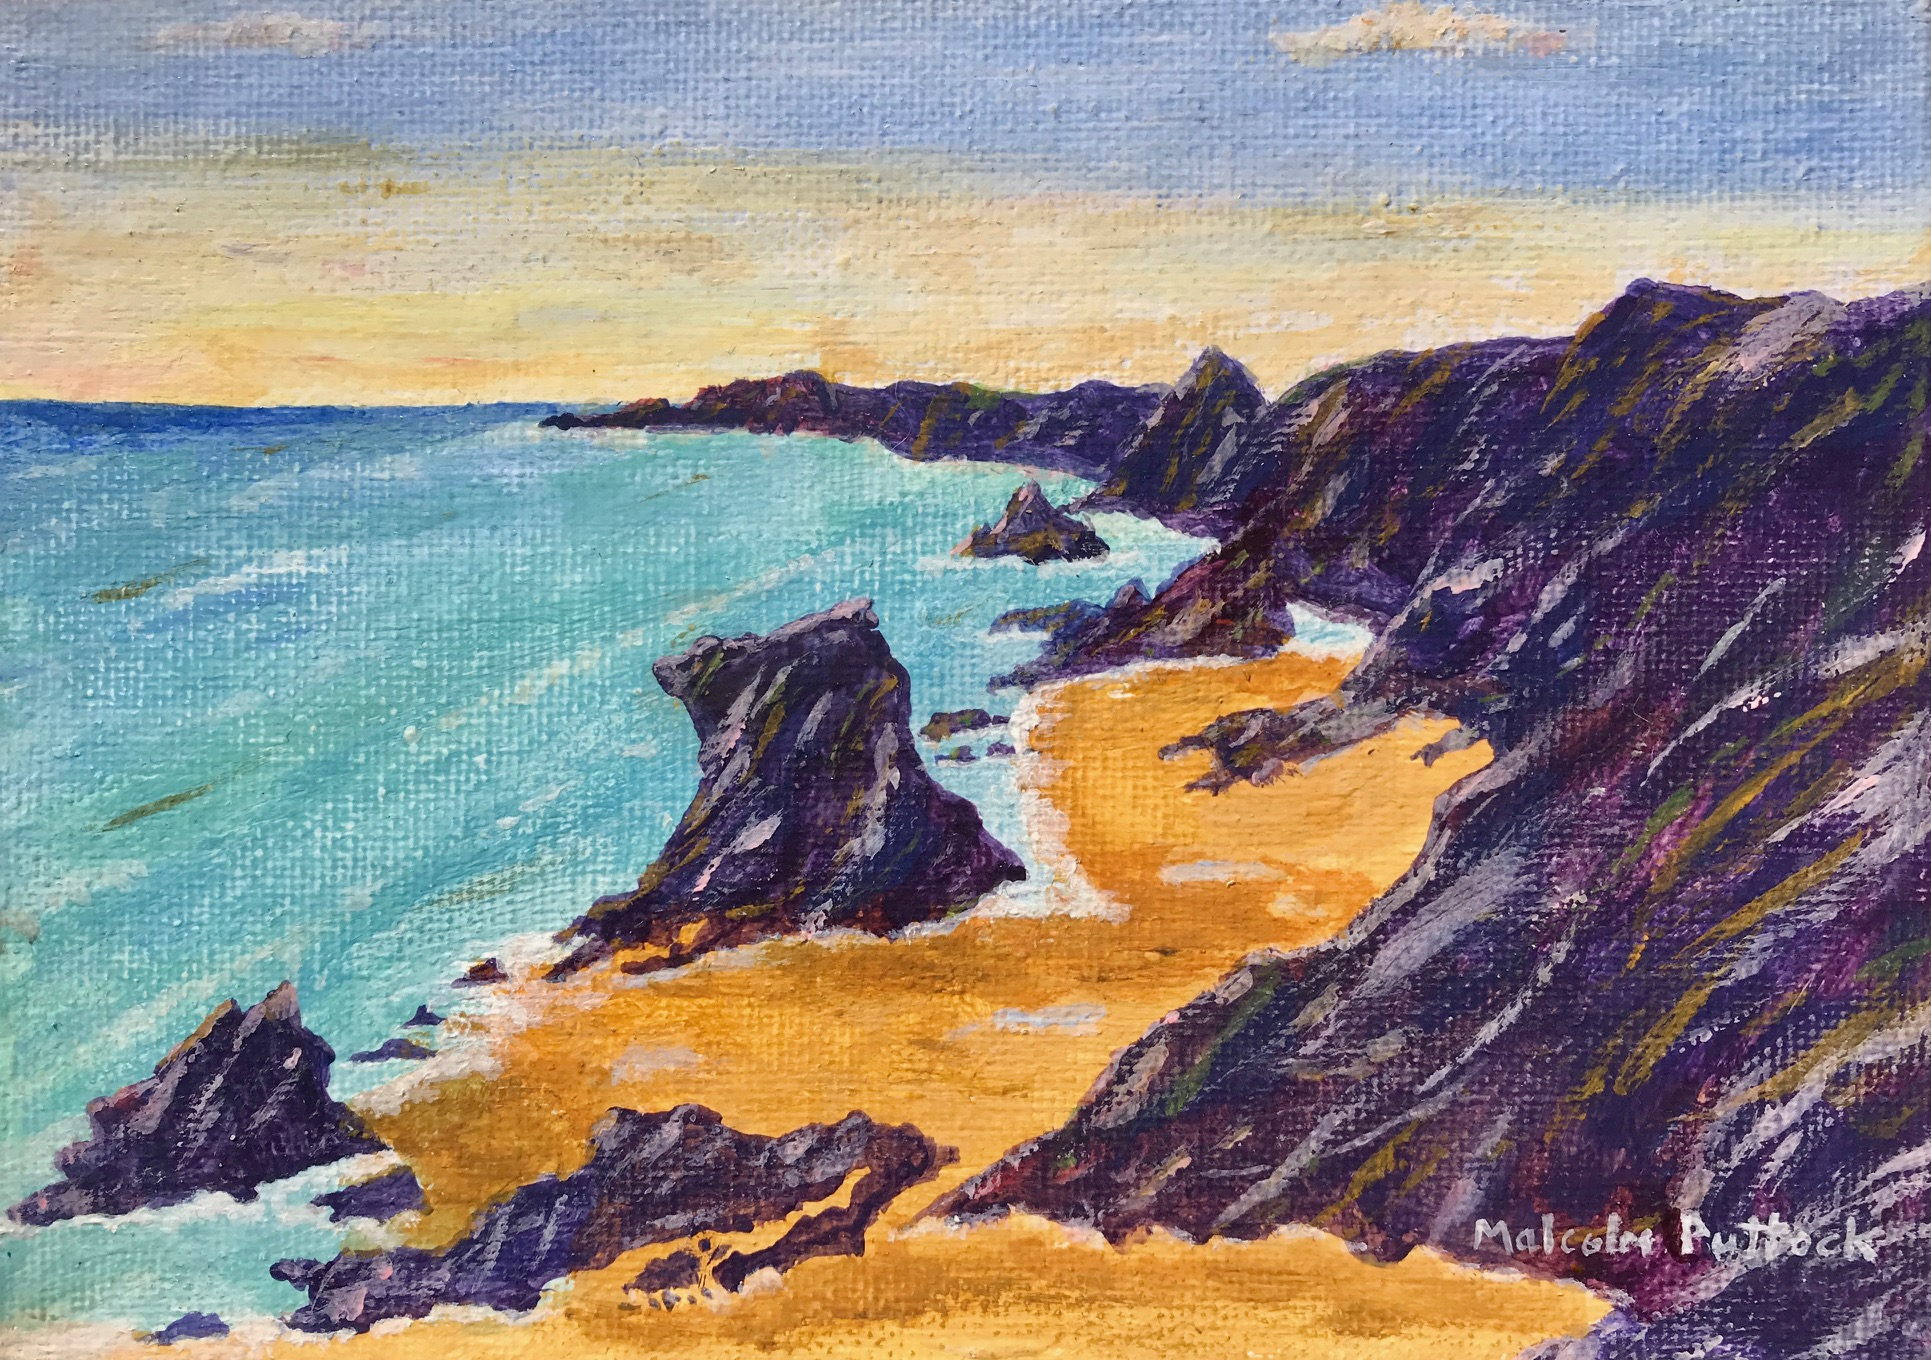 Sea, sand and cliffs